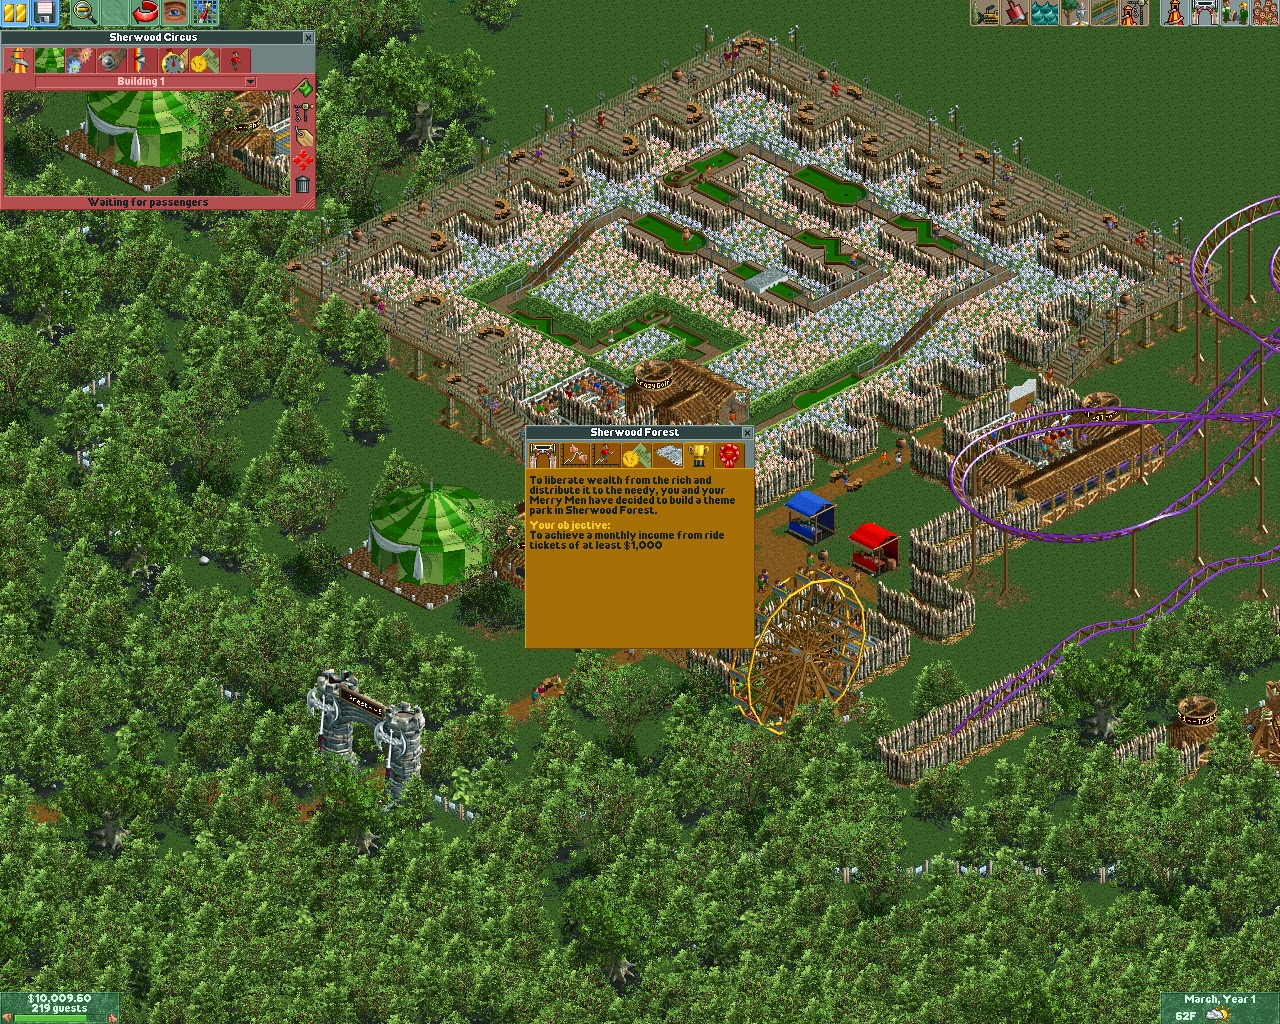 RollerCoaster Tycoon 2 - The Best Games Ever | The Best